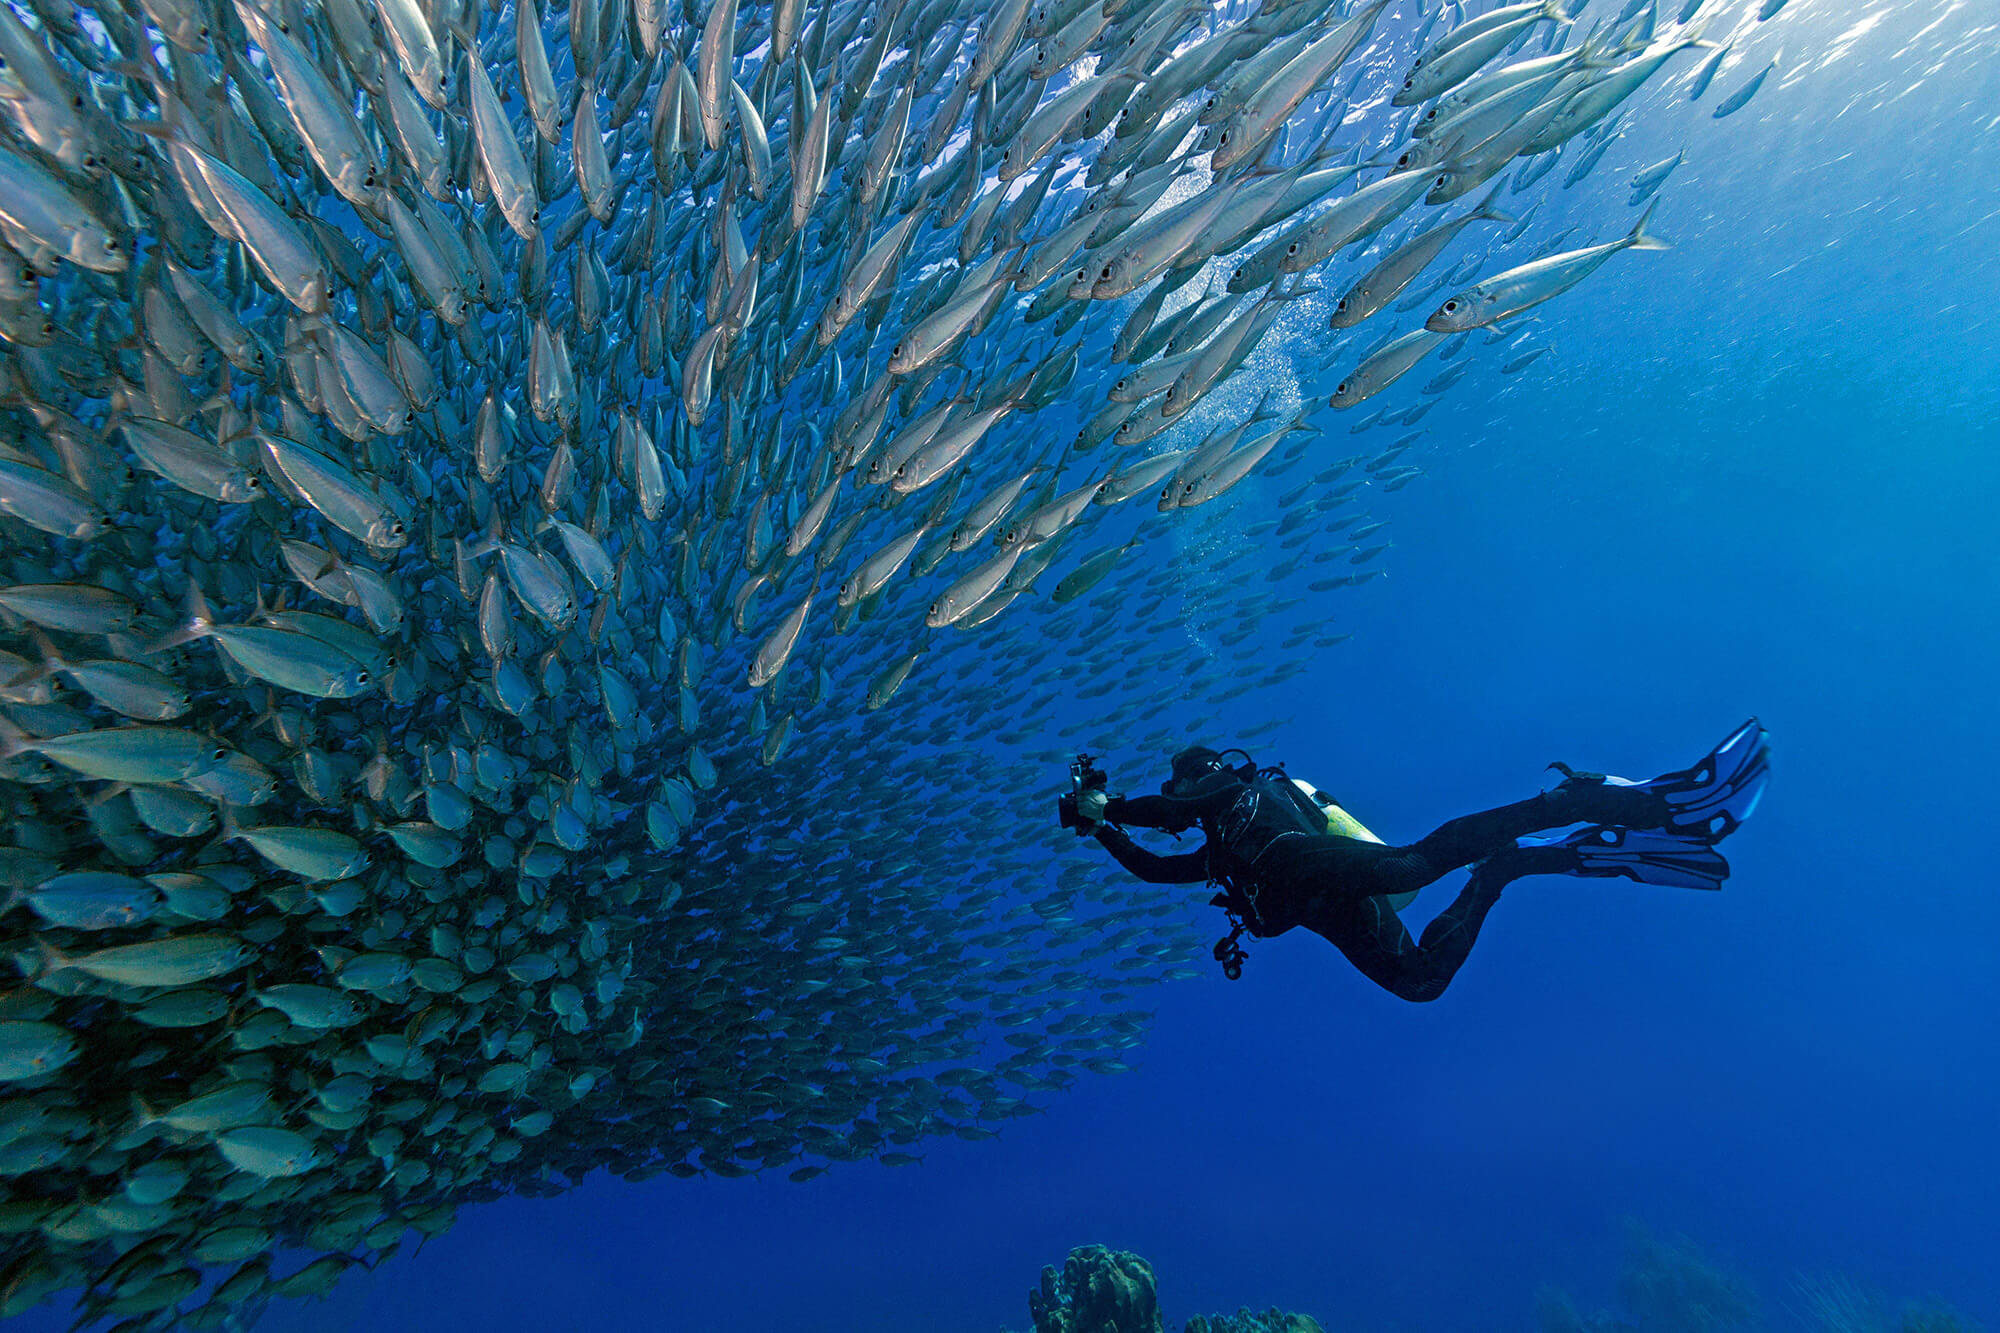 Joey On Bonaire Scuba Diving With A Large Bait Ball Of Fish, ABC Caribbean Islands